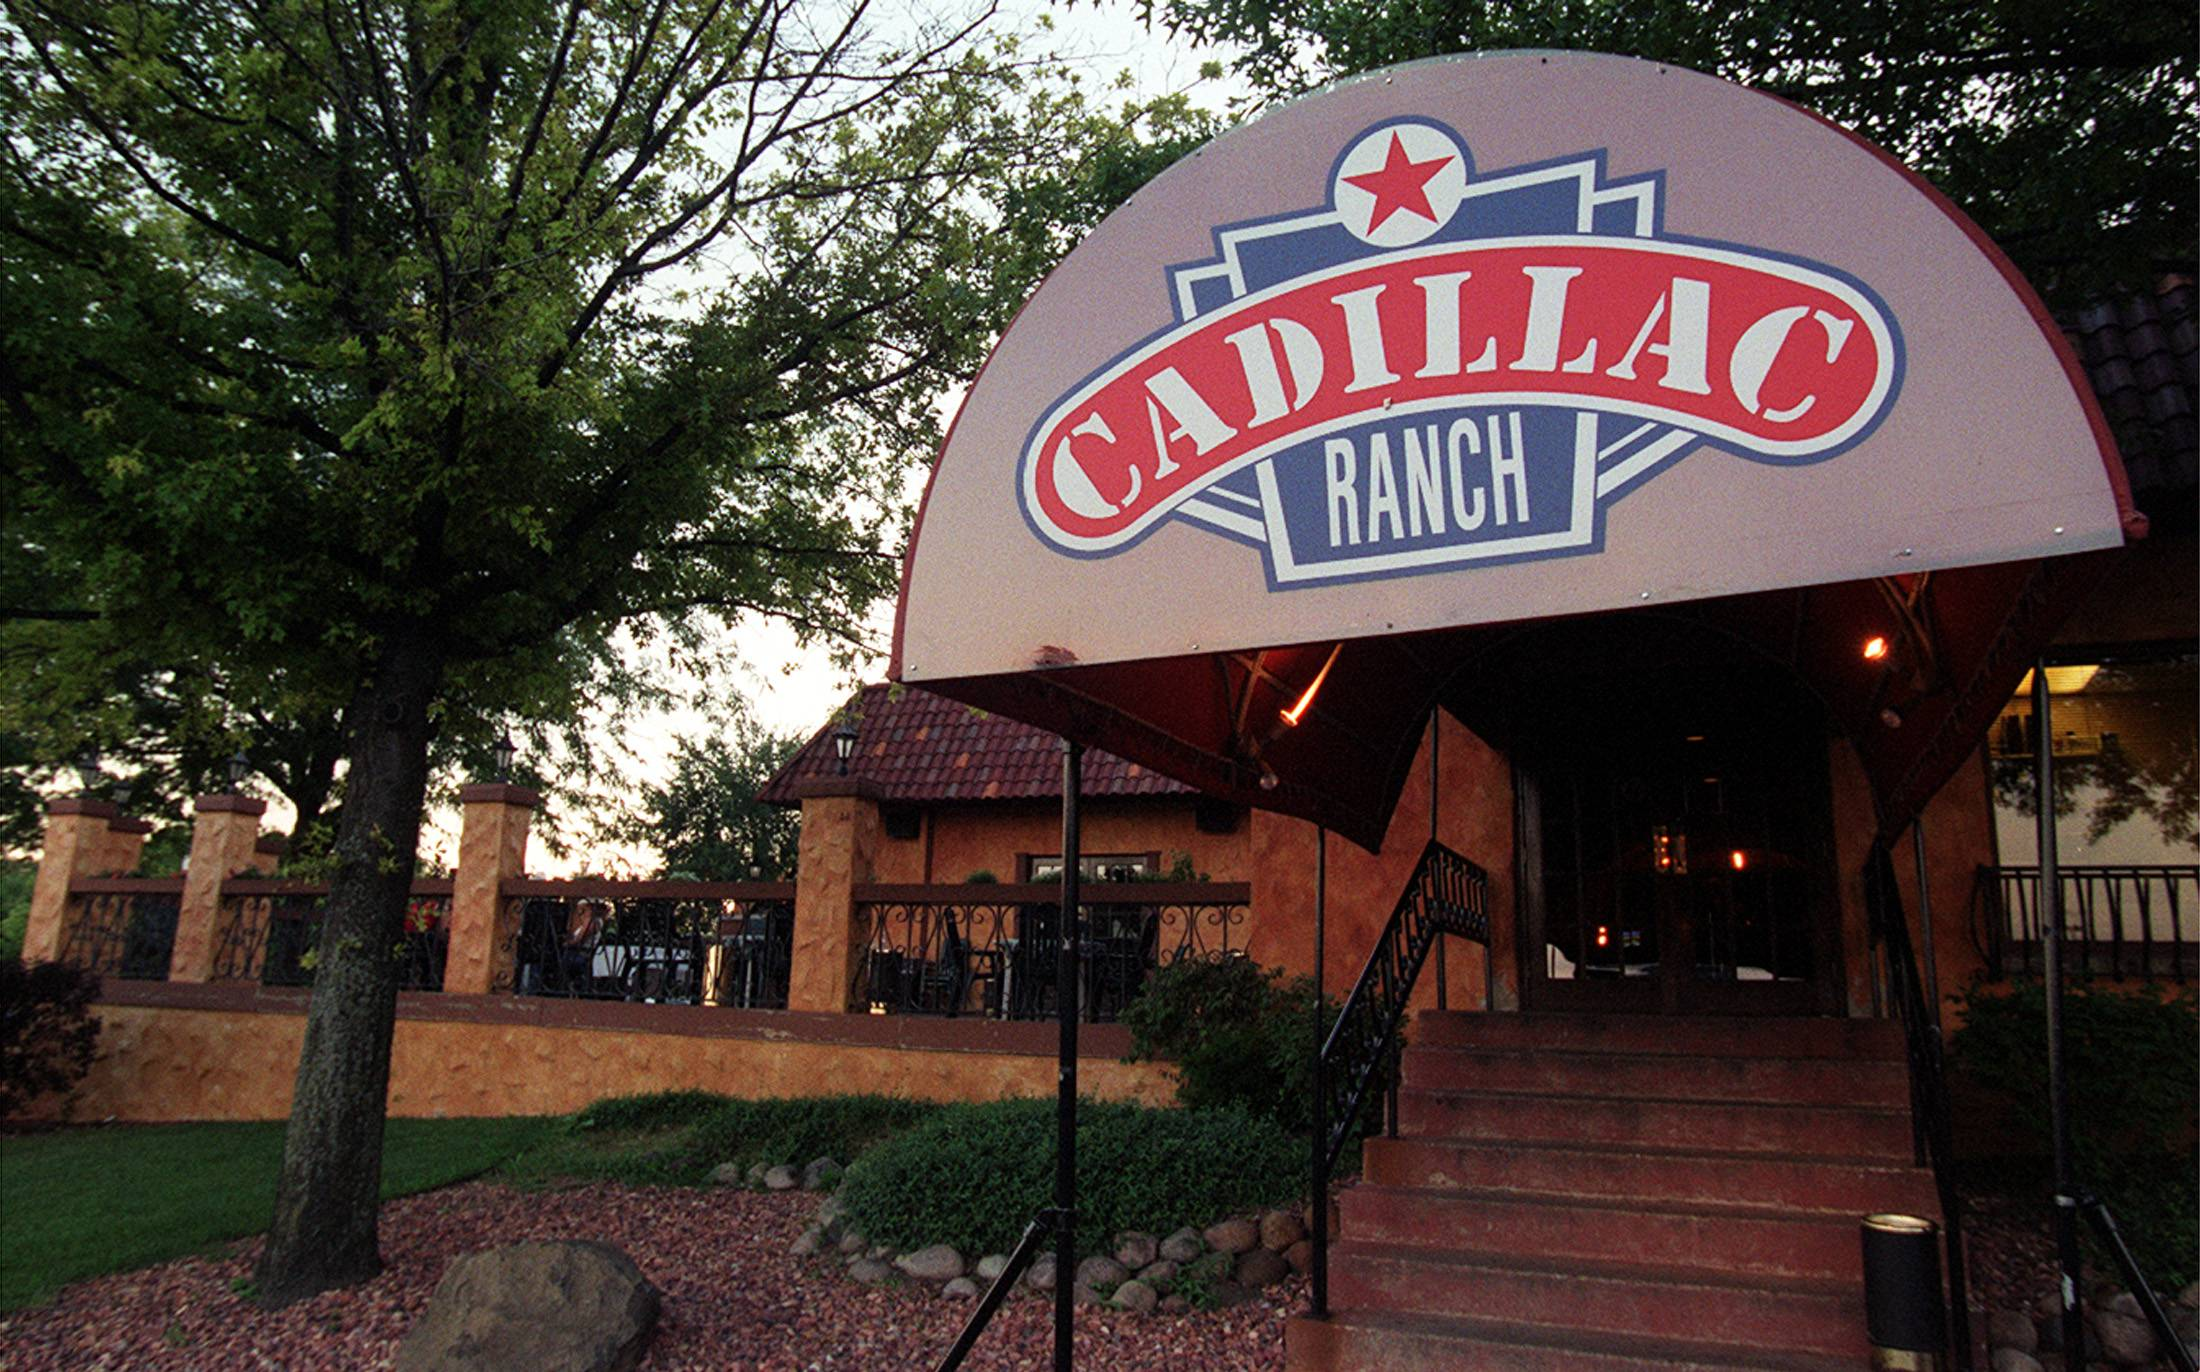 Cadillac Ranch reopening as 'new country' music venue